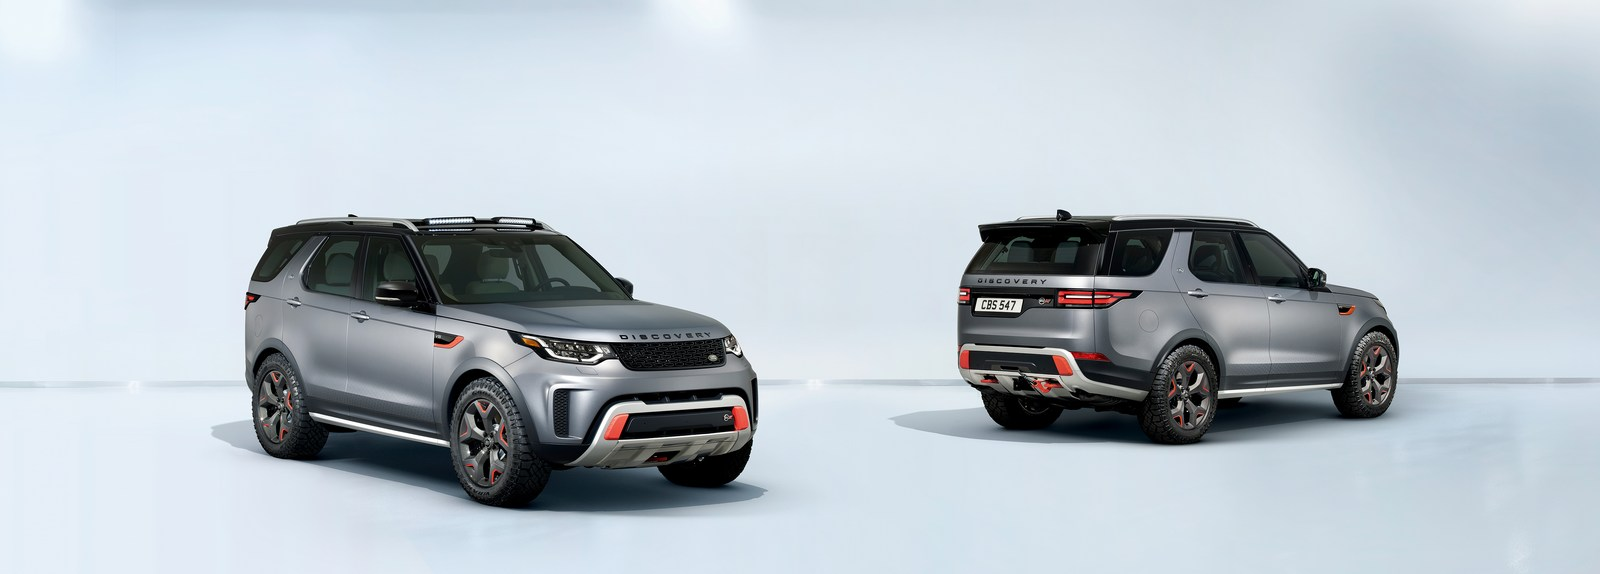 land-rover-discovery-svx-_soymotor_2.jpg